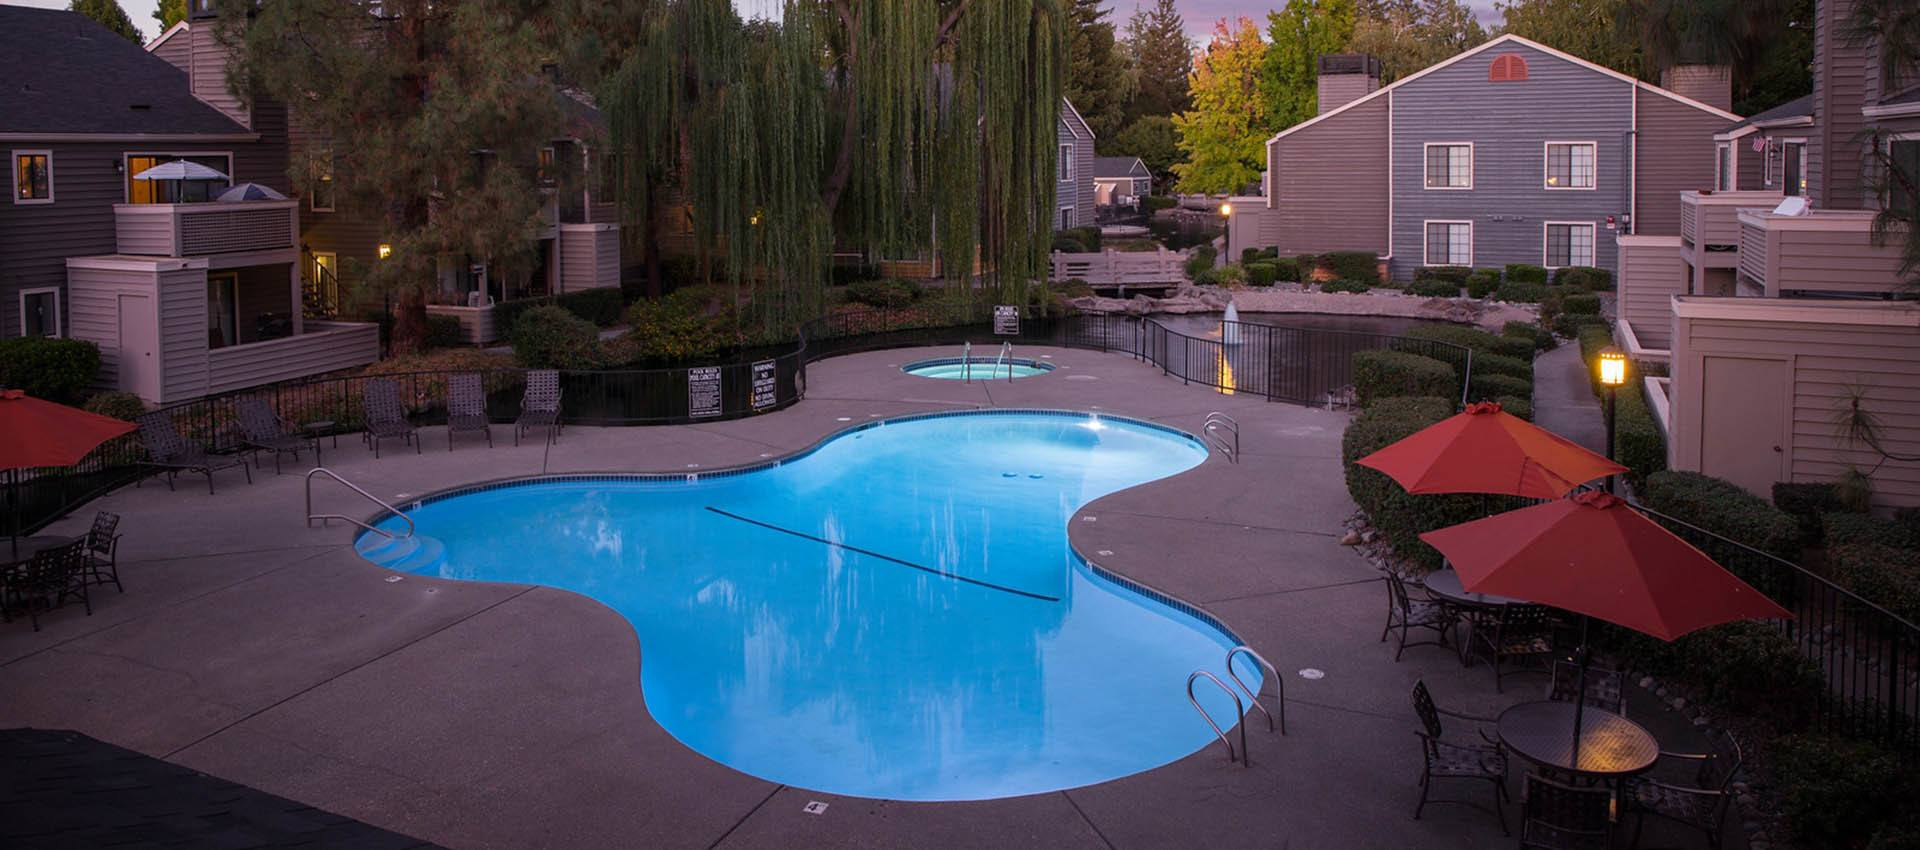 Resort Style Swimming Pool at Hidden Lake Condominium Rentals in Sacramento, California